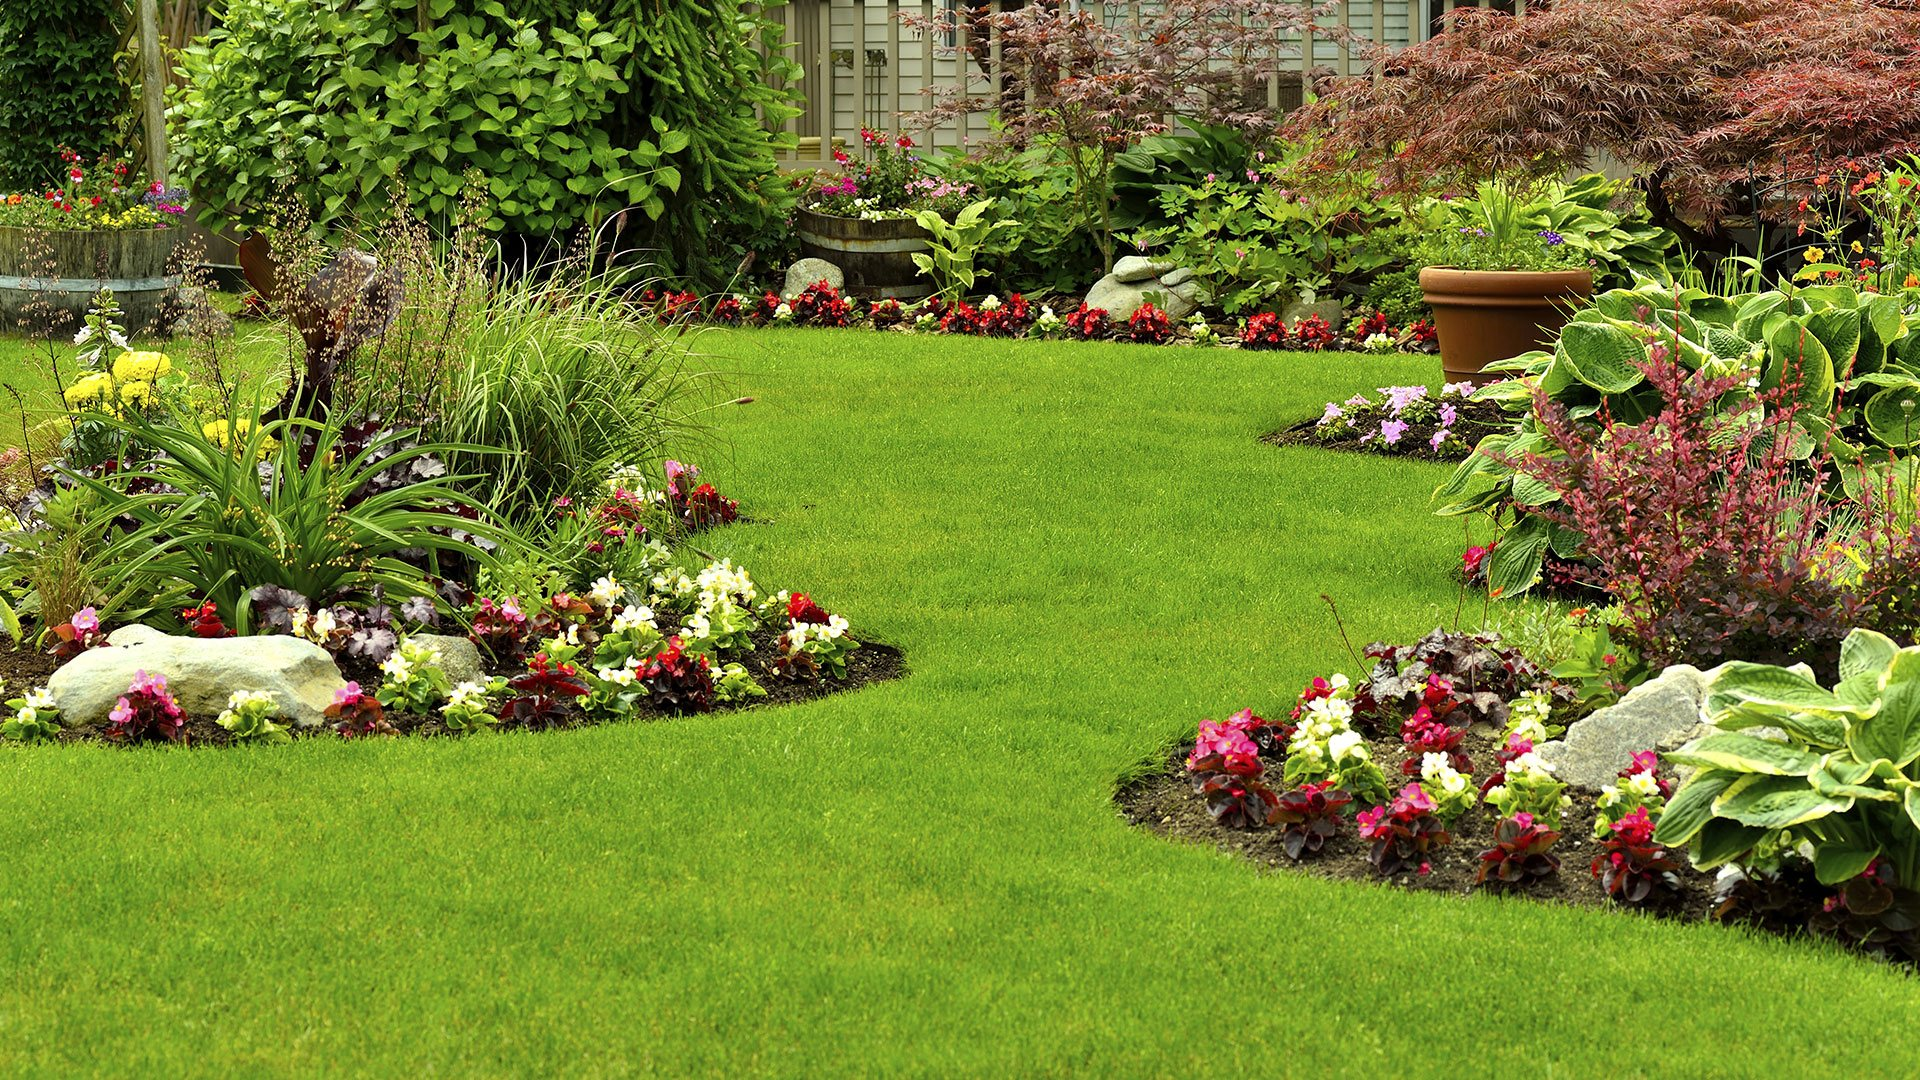 Garden Design | Meridian Landscape Design, Remodeled Patios And Irrigation